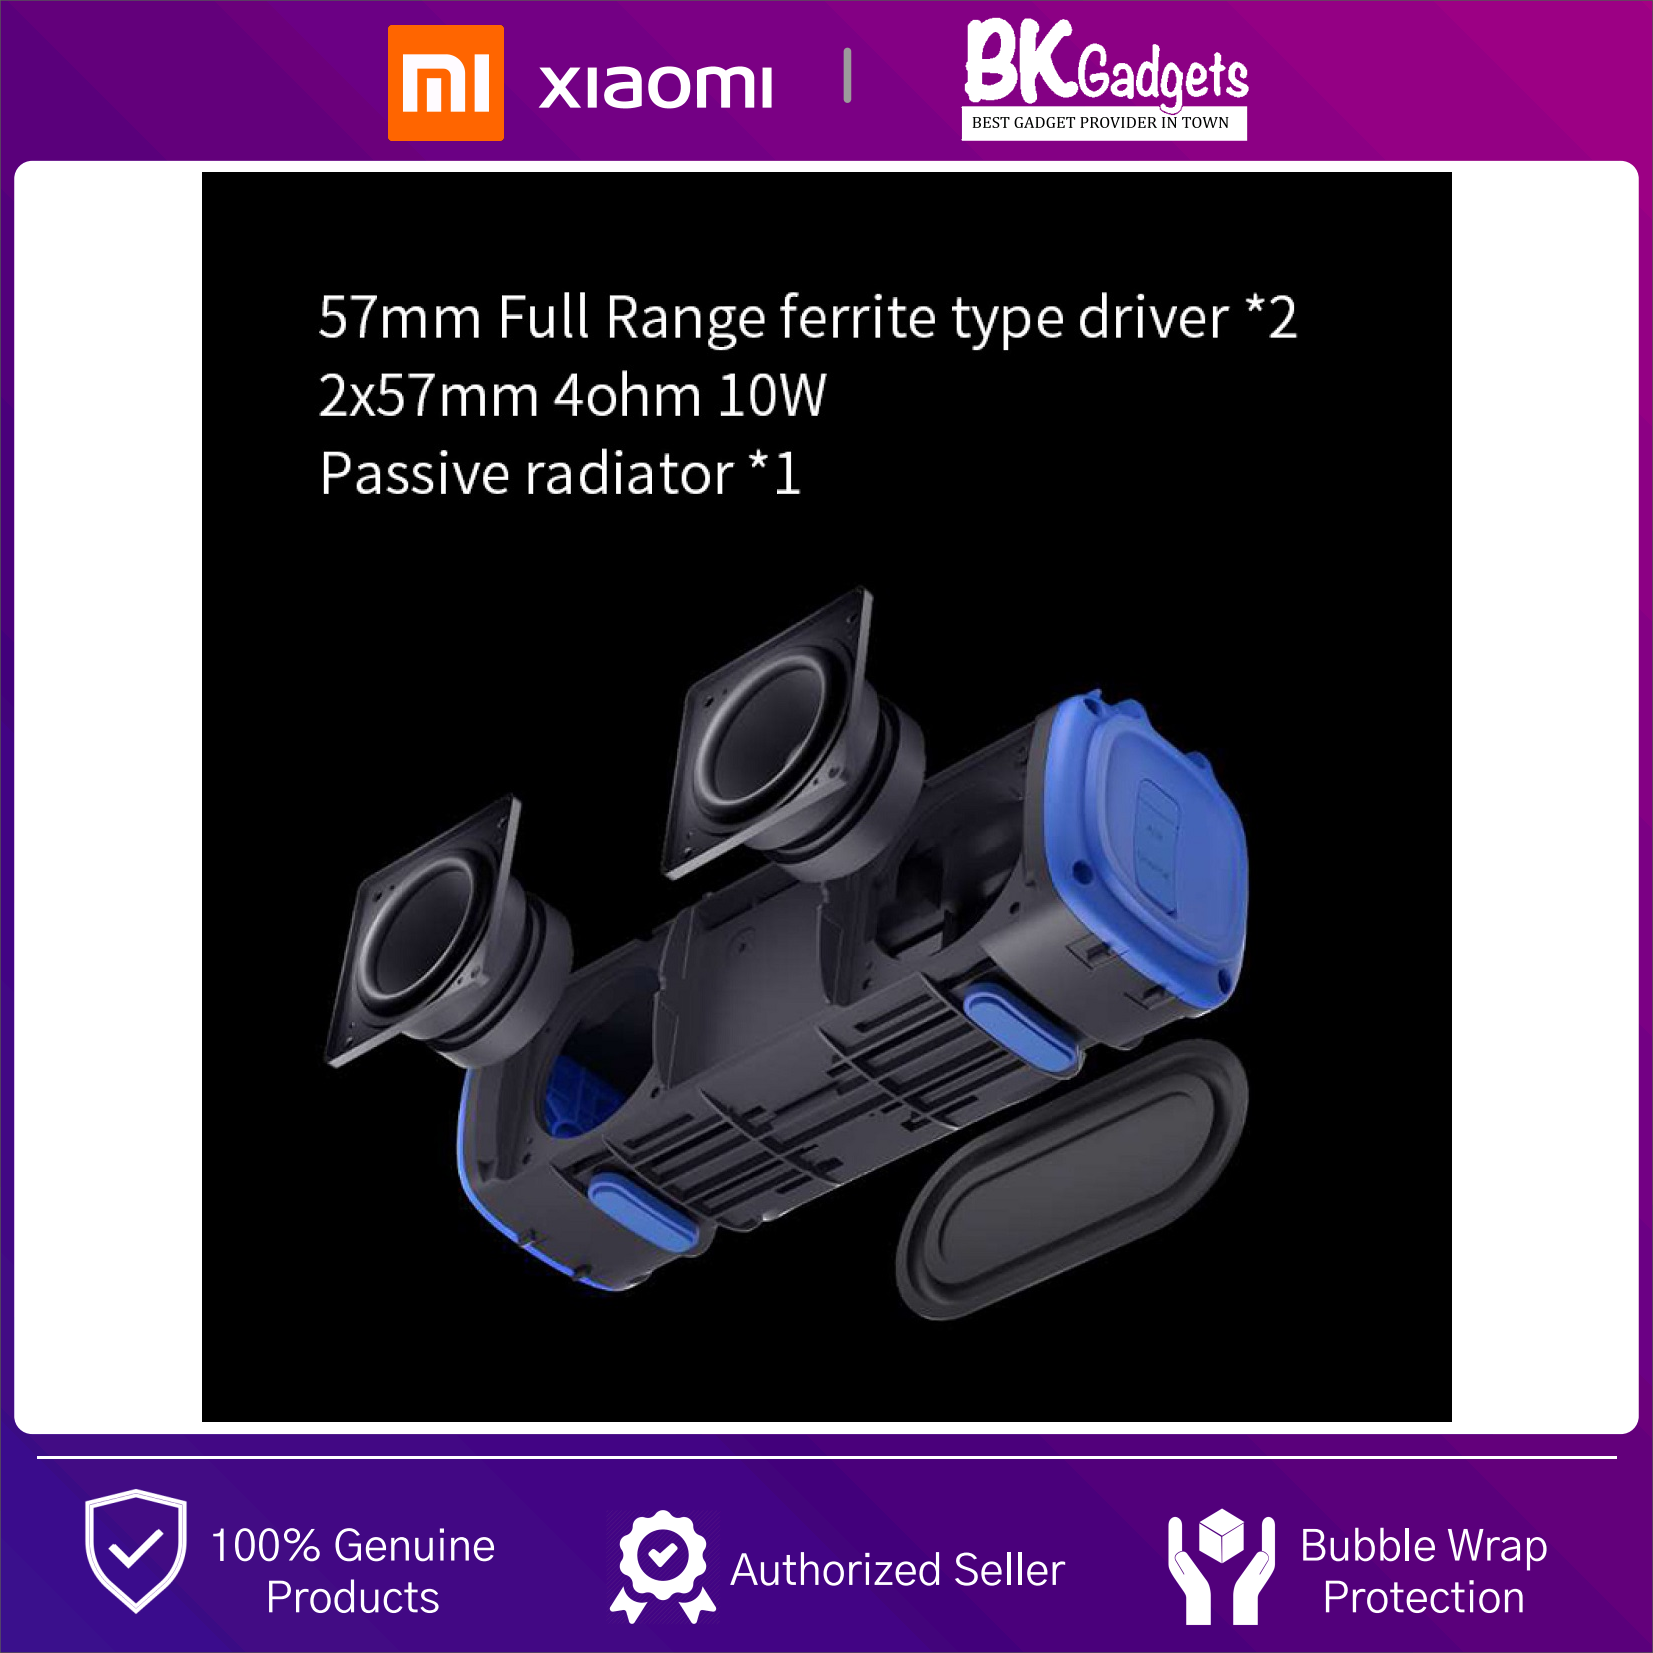 Xiaomi Mi Portable Bluetooth Speaker - Outdoor 16W | TWS Connection High Quality Sound | IPX7 Waterproof | 13 hours Playtime